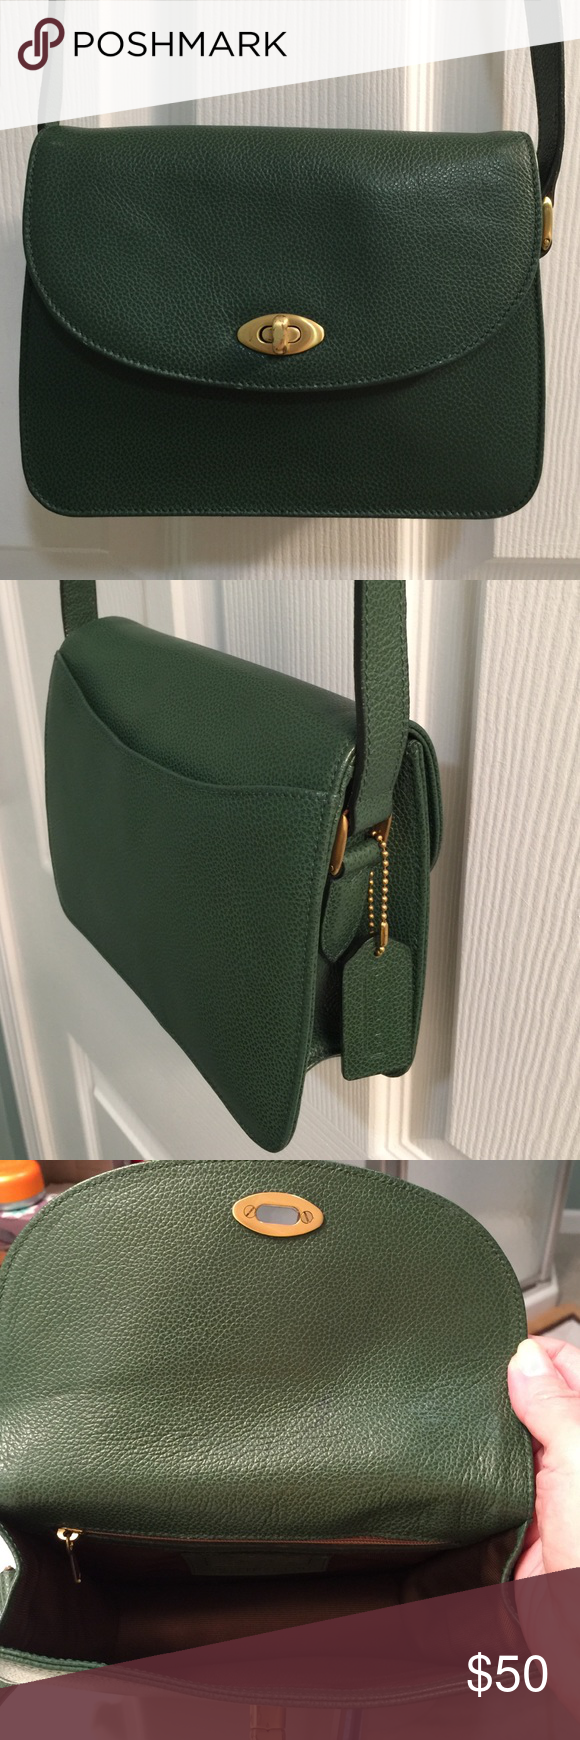 1aea0d3131f3 Vintage Coach made in Italy Vintage Coach Crossbody bag in green pebbled  leather. This is a special bag made in Italy! It s in great condition with  a slip ...